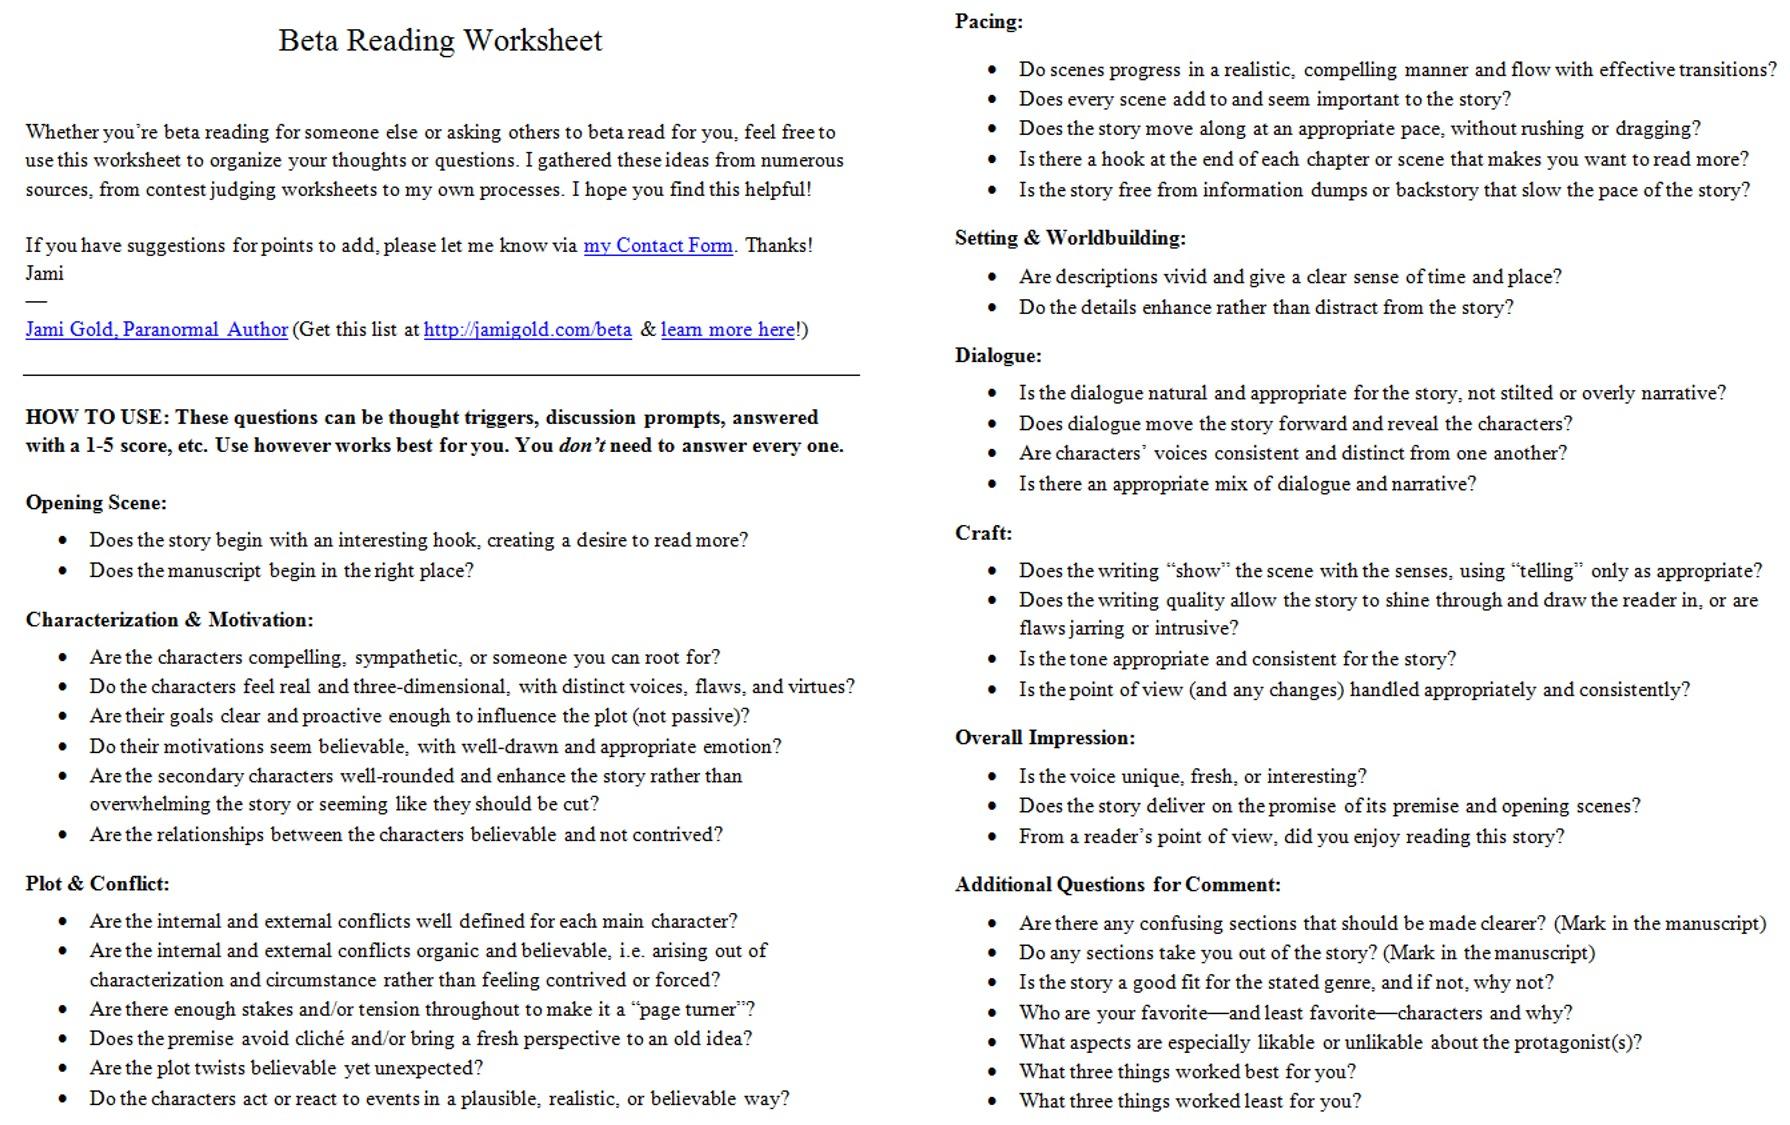 Weirdmailus  Nice Worksheets For Writers  Jami Gold Paranormal Author With Interesting Screen Shot Of The Twopage Beta Reading Worksheet With Charming Graphing Worksheets Grade  Also Adverb Worksheet Th Grade In Addition Two Point Perspective Worksheets And Grade  Math Worksheets Multiplication As Well As Simple Measurement Worksheets Additionally St Standard English Worksheet From Jamigoldcom With Weirdmailus  Interesting Worksheets For Writers  Jami Gold Paranormal Author With Charming Screen Shot Of The Twopage Beta Reading Worksheet And Nice Graphing Worksheets Grade  Also Adverb Worksheet Th Grade In Addition Two Point Perspective Worksheets From Jamigoldcom